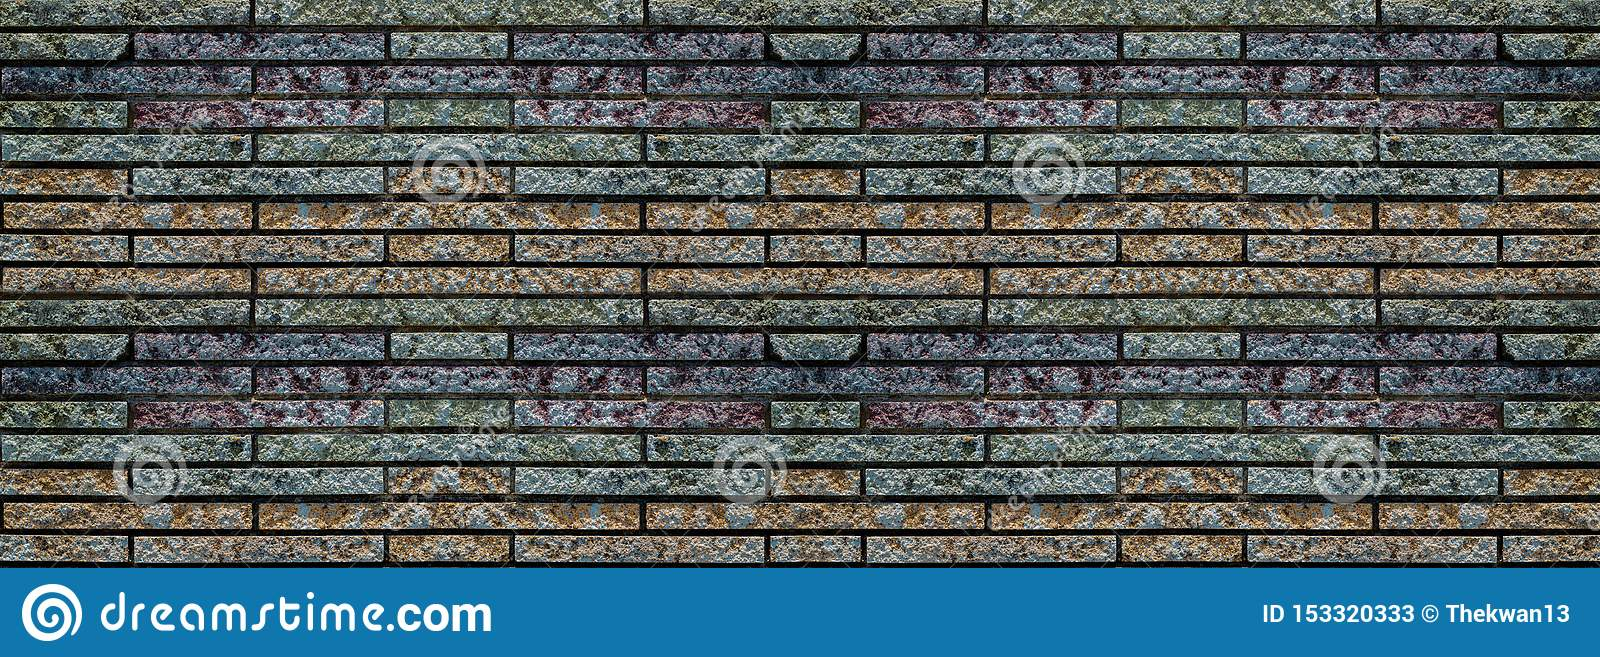 Wide old brick wall , vintage brick wall in a background image